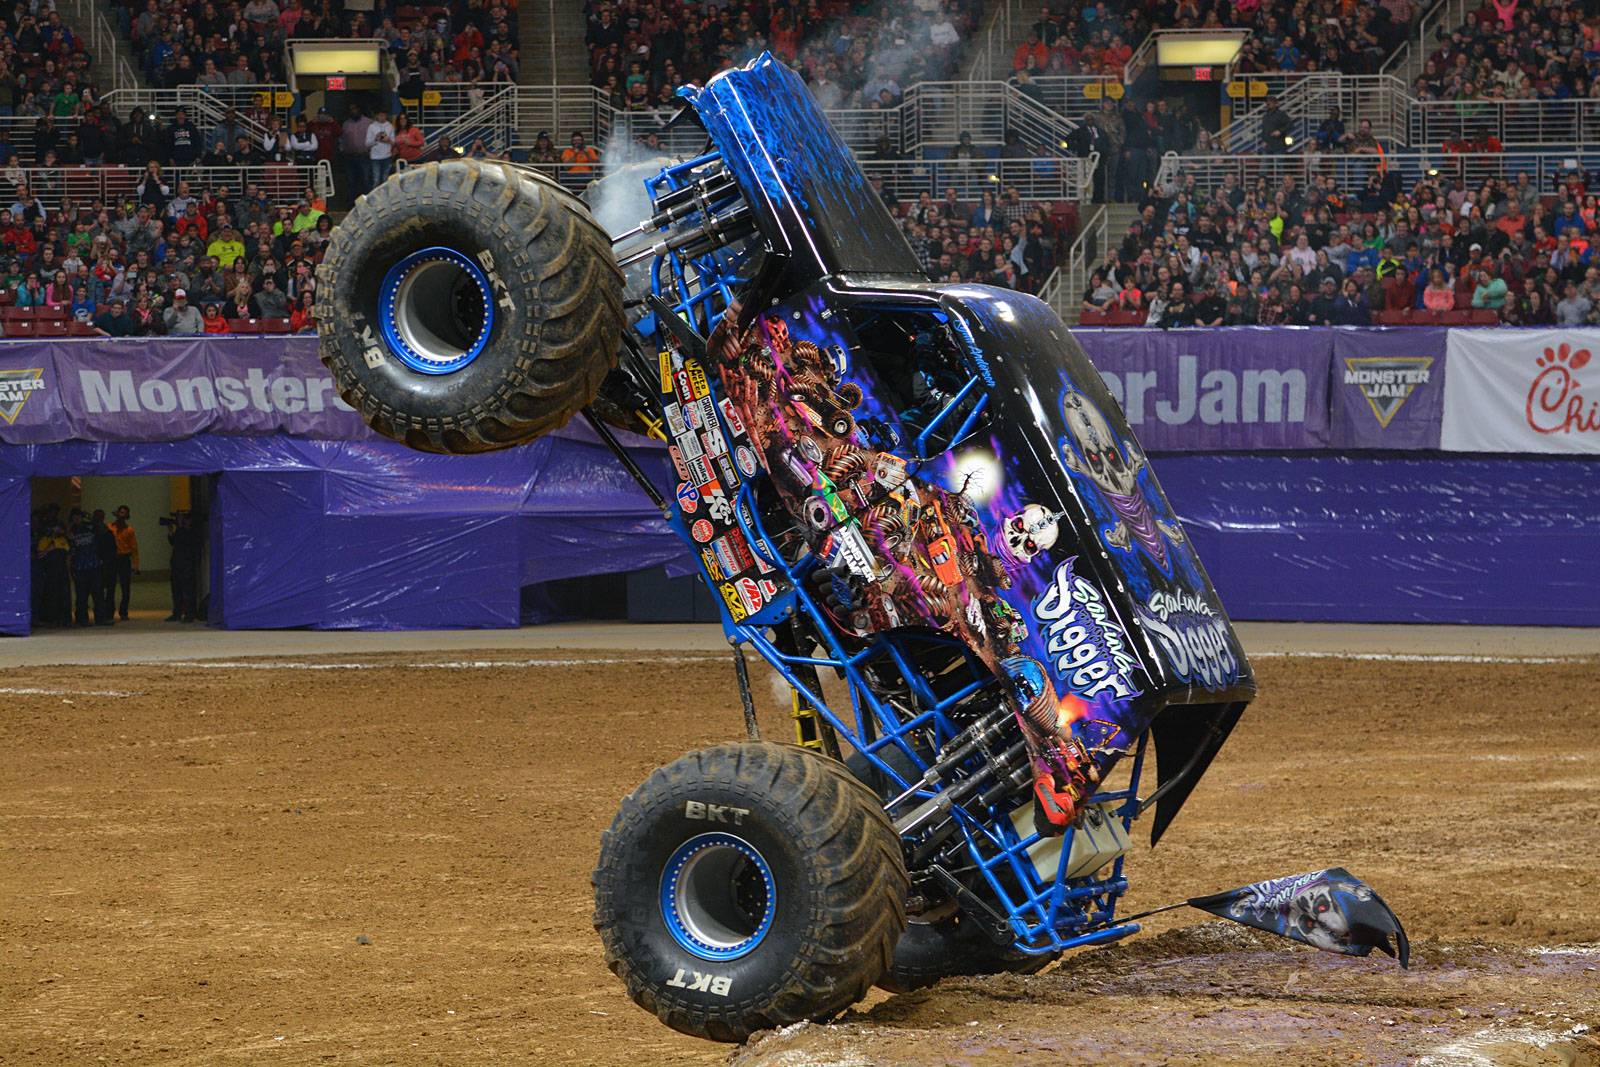 Wheelstand for Son-uva Digger (Photo by Jason Twite)